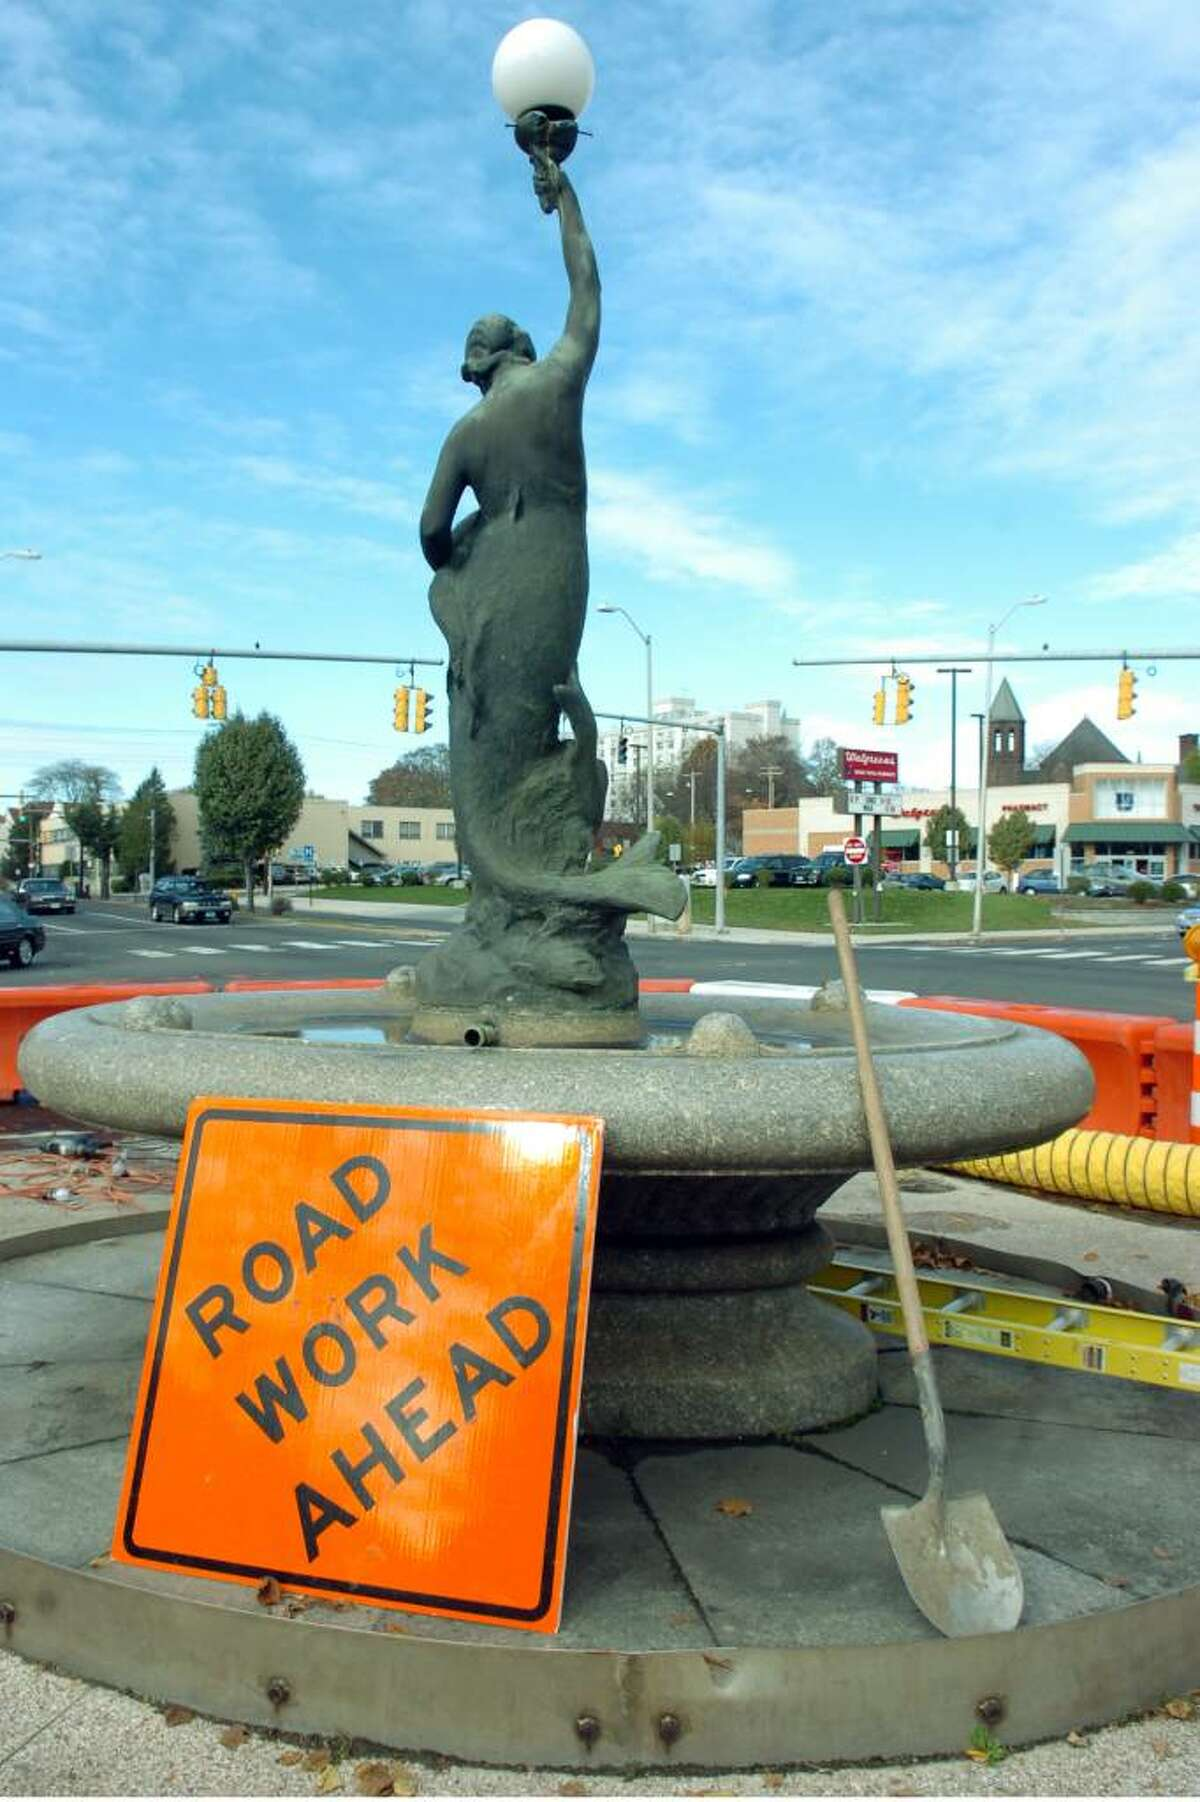 The Wheeler Memorial Fountain in Bridgeport, Conn. on Nov. 2nd, 2009. The historic fountain, which was built in 1912, will soon be refurbished after years of neglect and damage from automobile collisions.